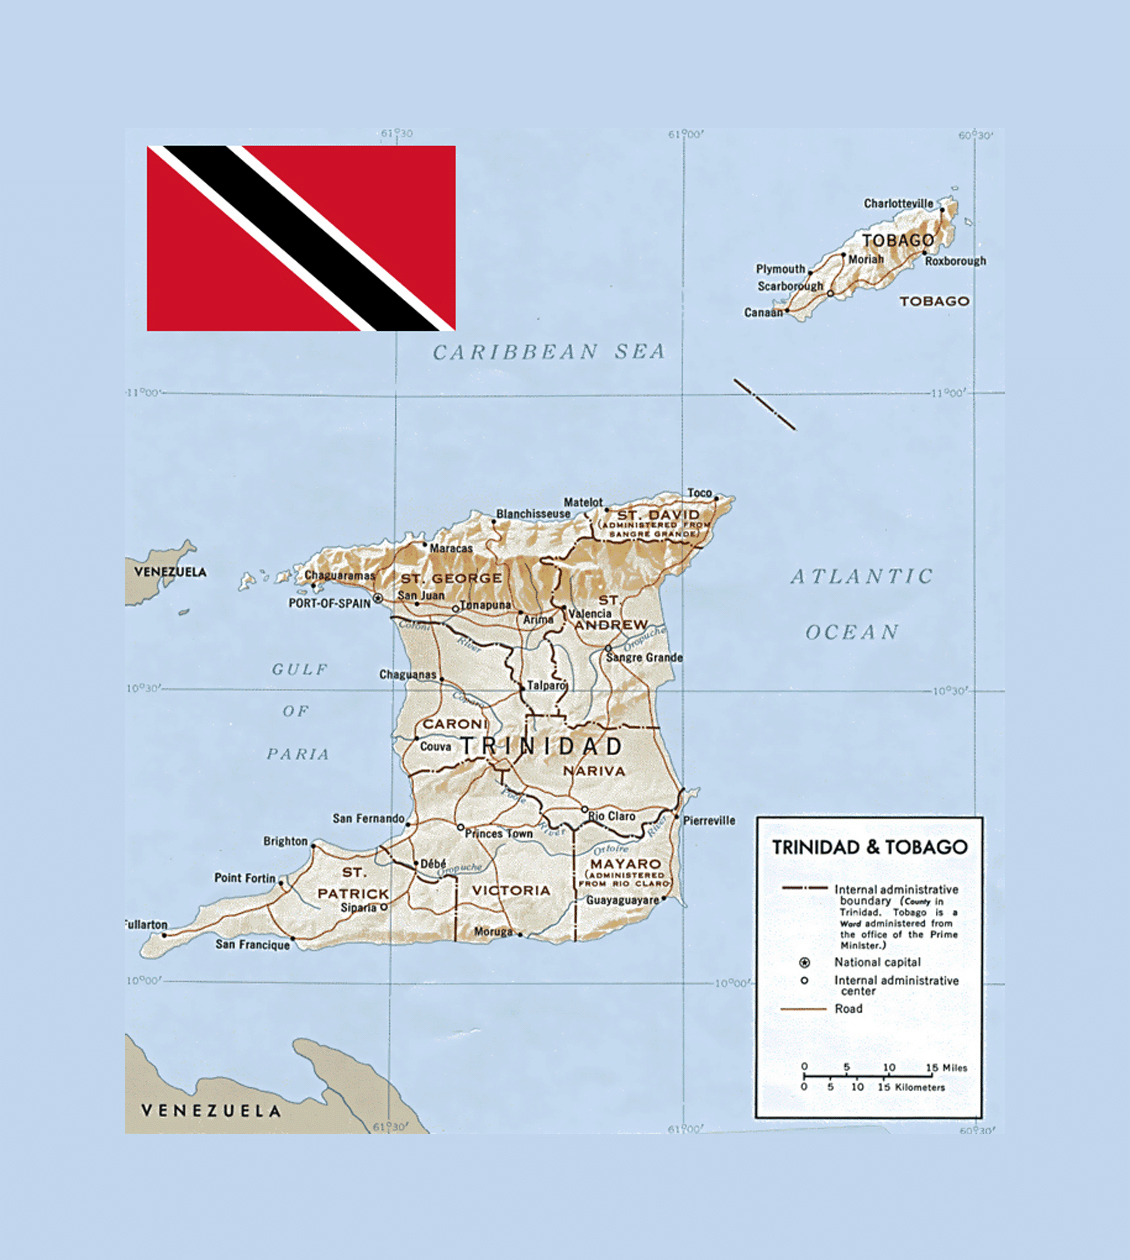 Political and administrative map of Trinidad and Tobago with relief